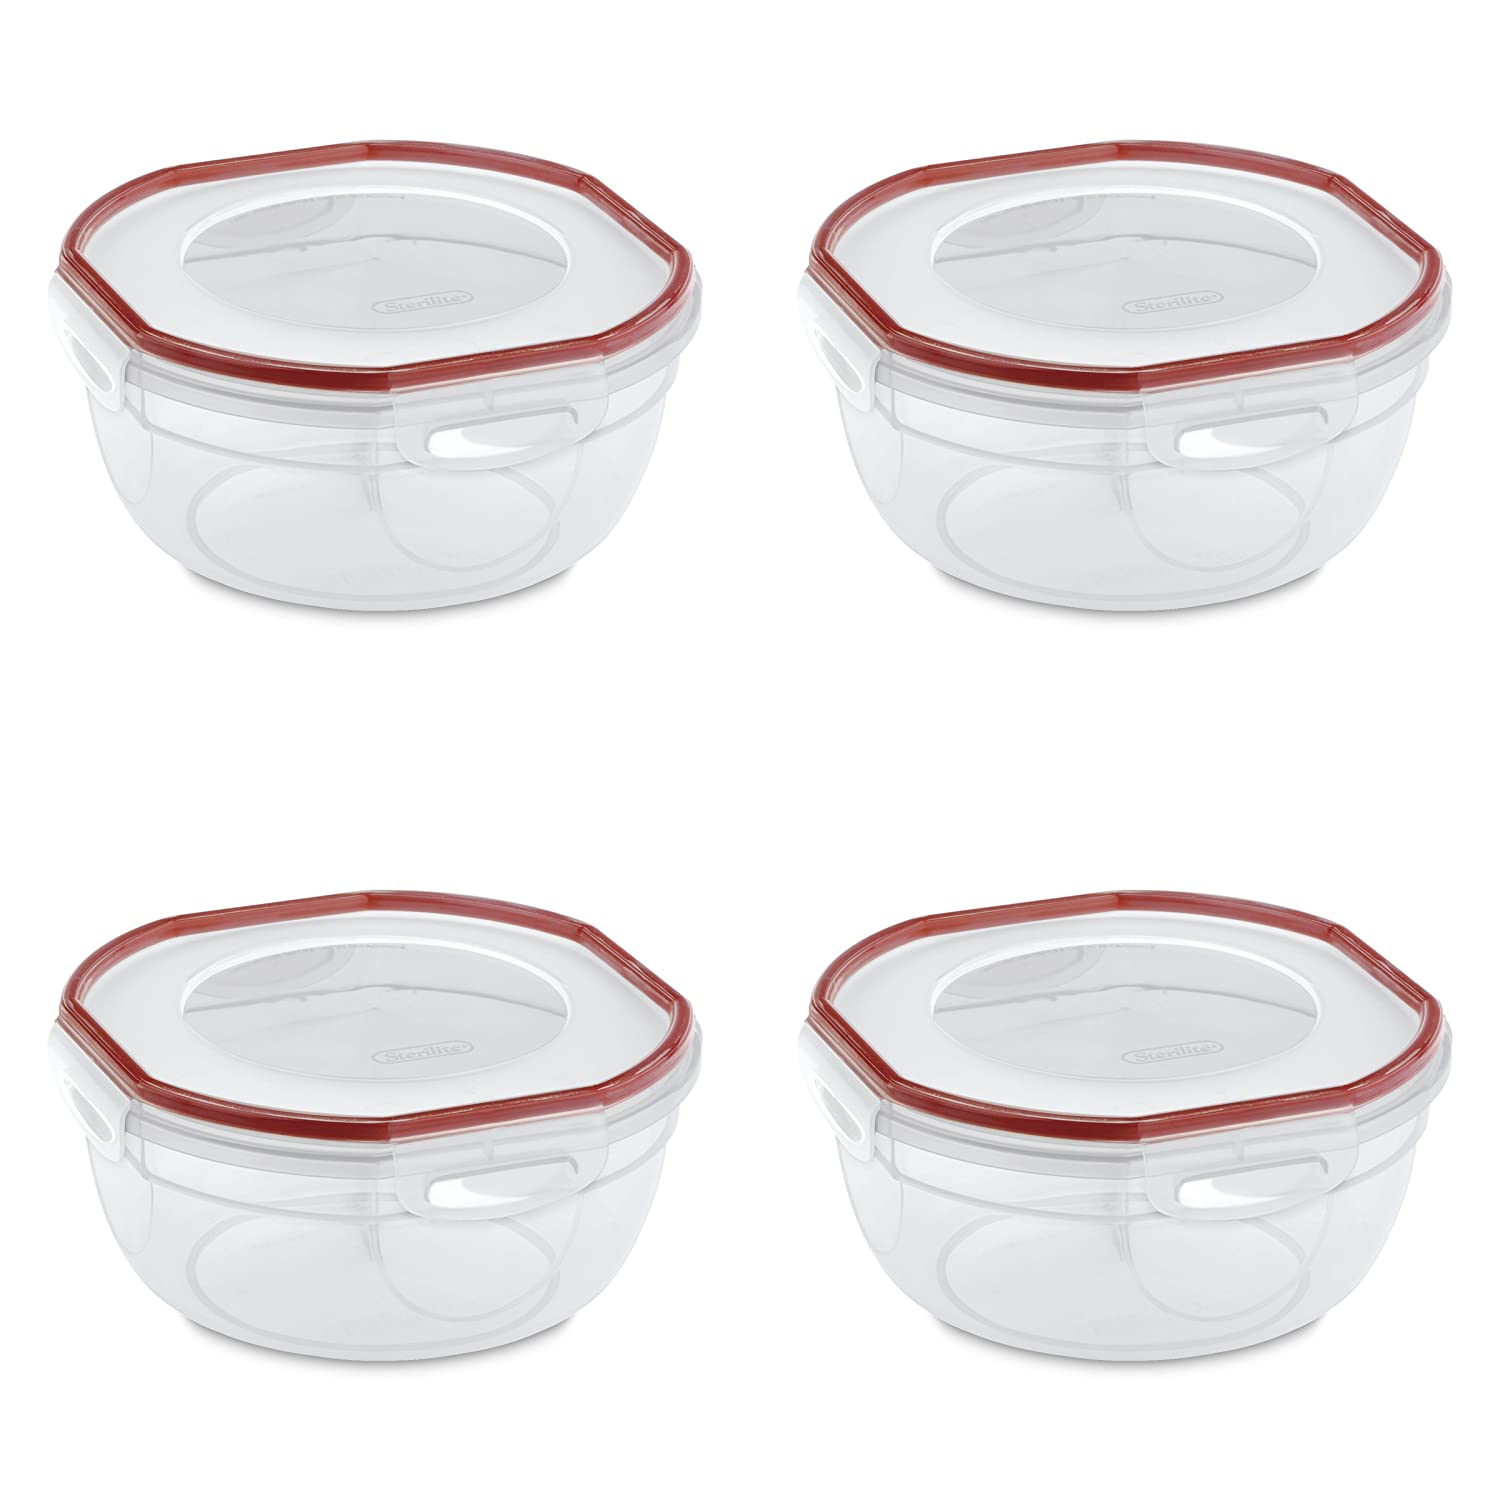 Sterilite 03938604 Ultra-Seal 2.5 Quart Bowl, Clear Lid & Base with Rocket Red Gasket, 4-Pack